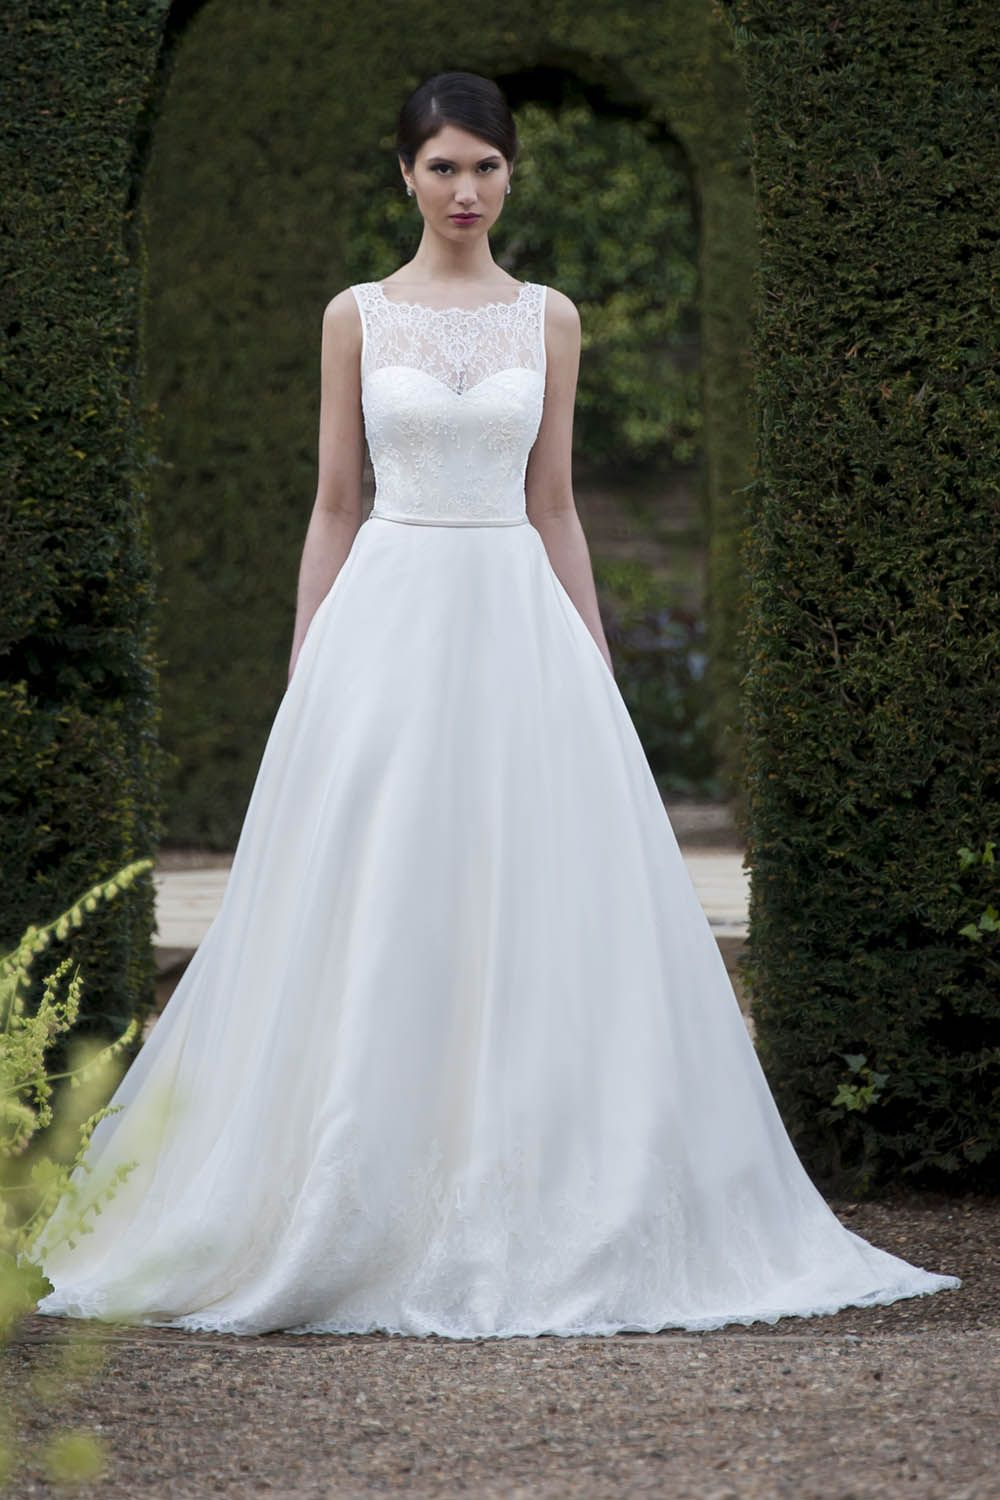 Magnificent Hourglass Wedding Dress | Wedding Photography